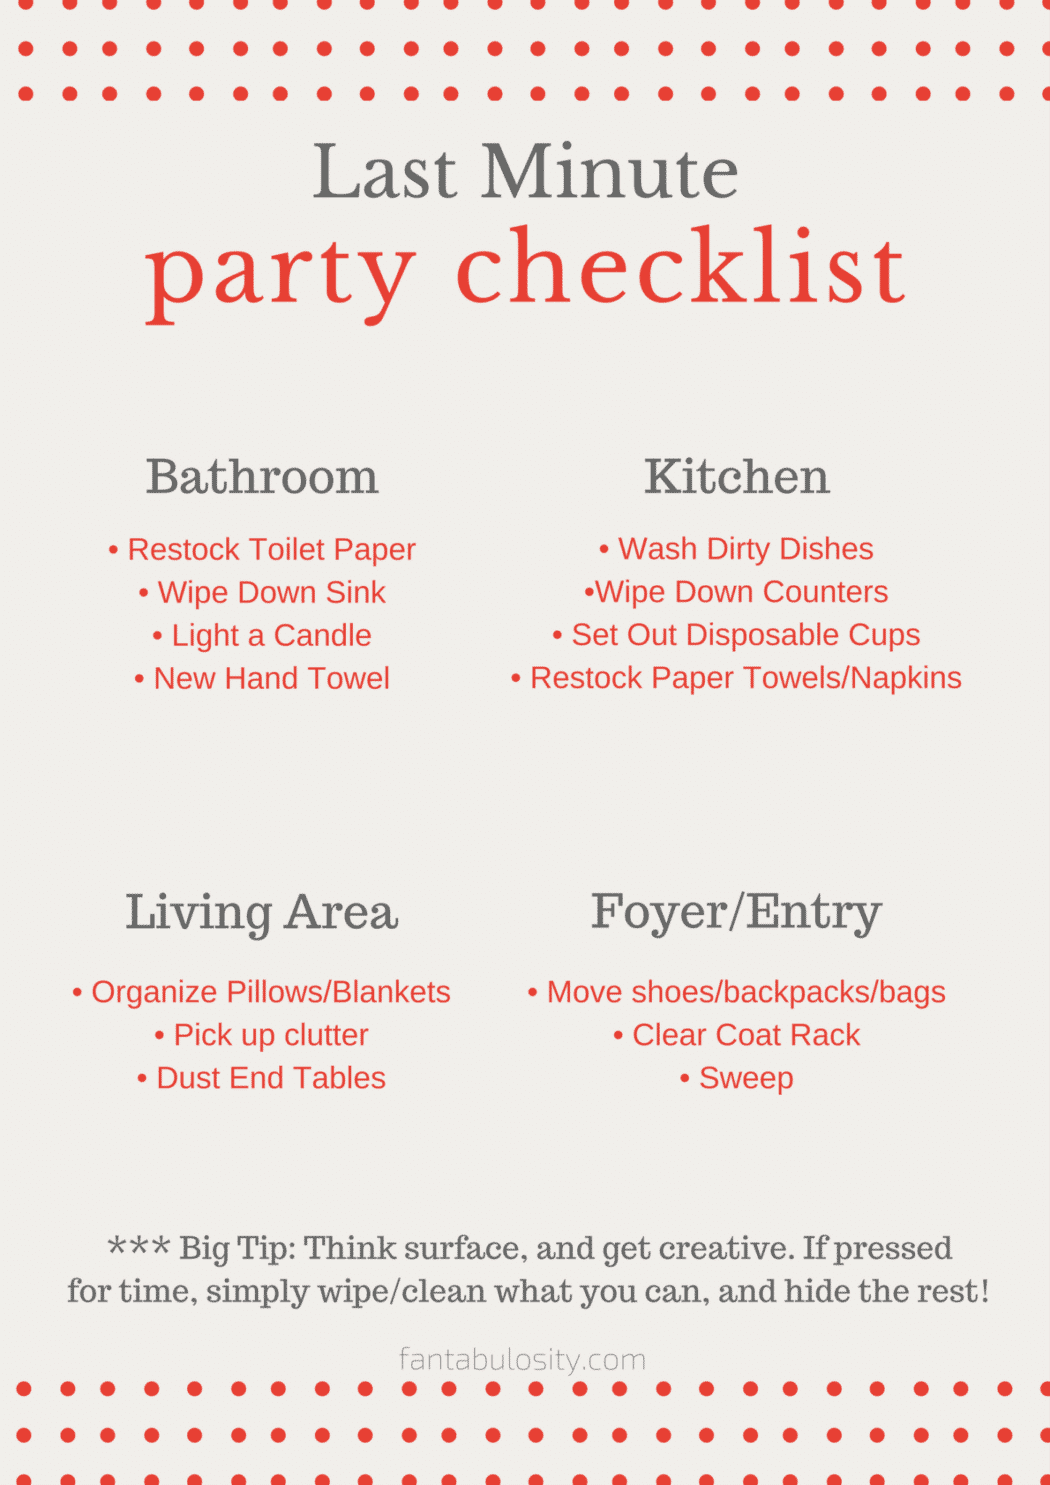 Last minute party checklist free download fantabulosity for Last minute party ideas